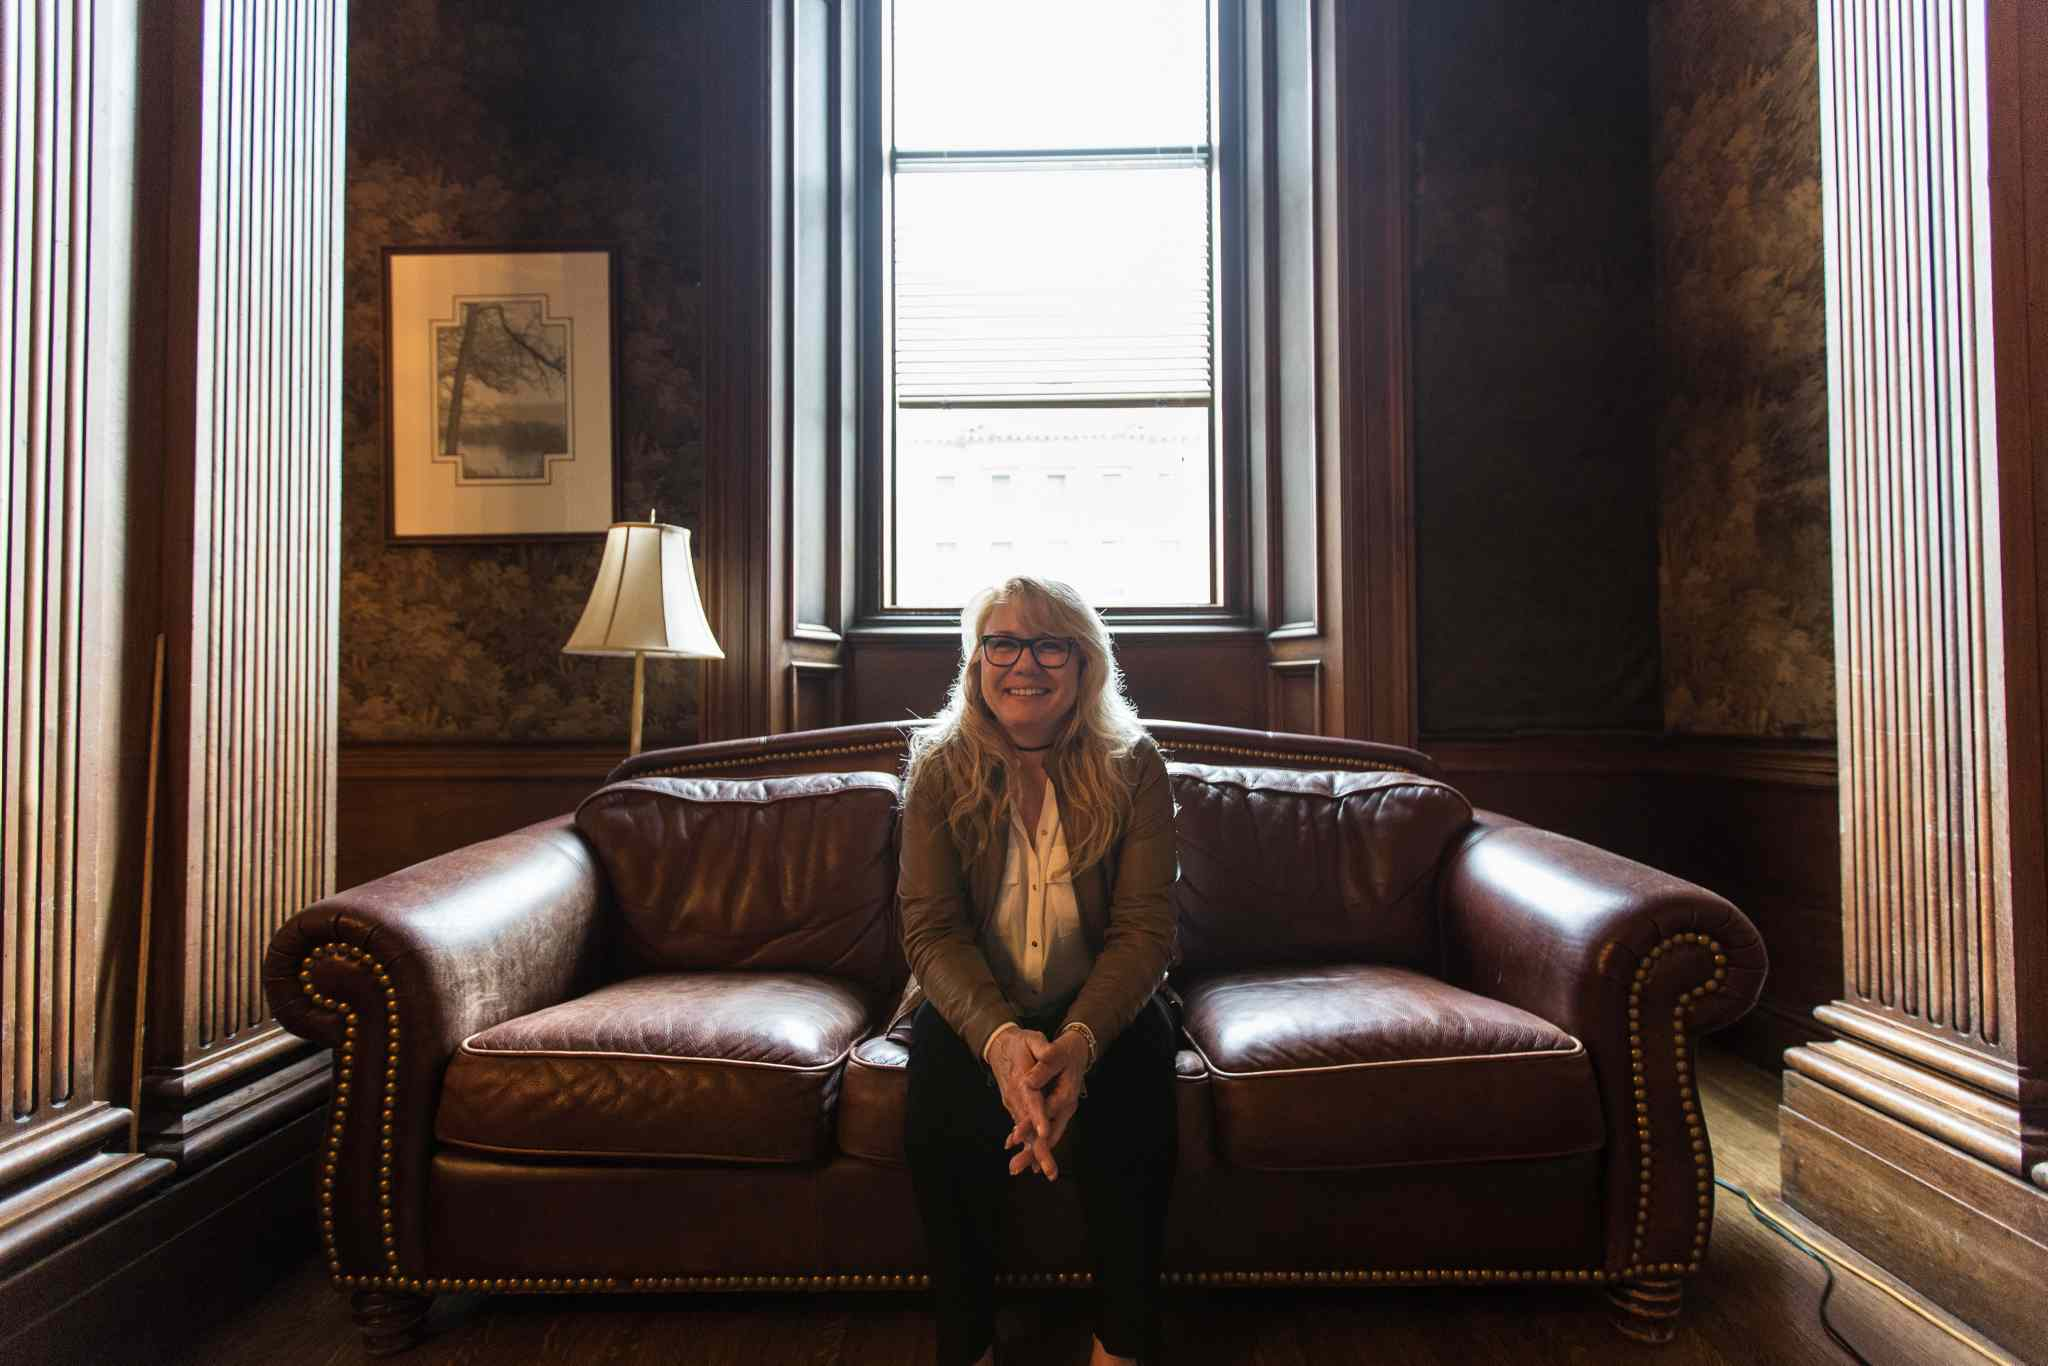 Cindy Tugwell, Executive Director for Heritage Winnipeg, sits on a leather couch in the 'tapestry room' of the Millennium Centre.